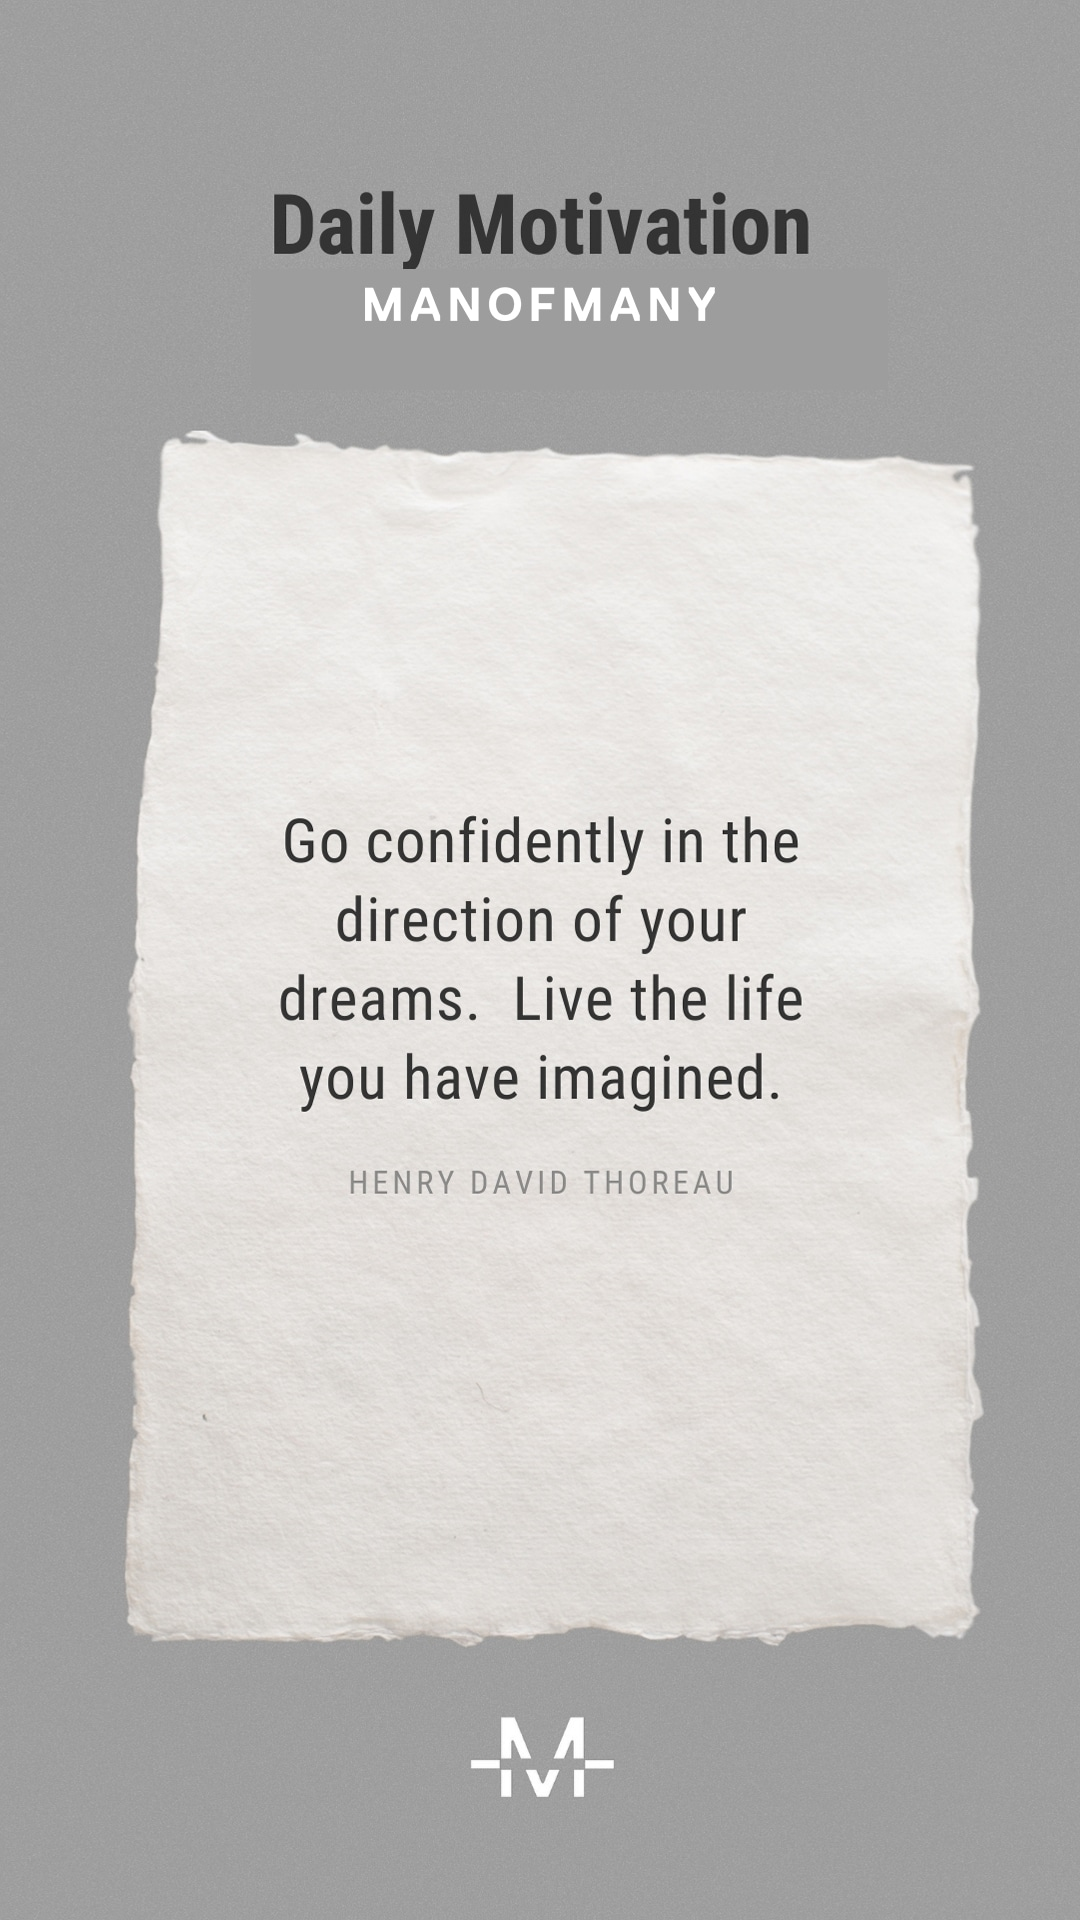 Go confidently in the direction of your dreams. Live the life you have imagined. –Henry David Thoreau quote